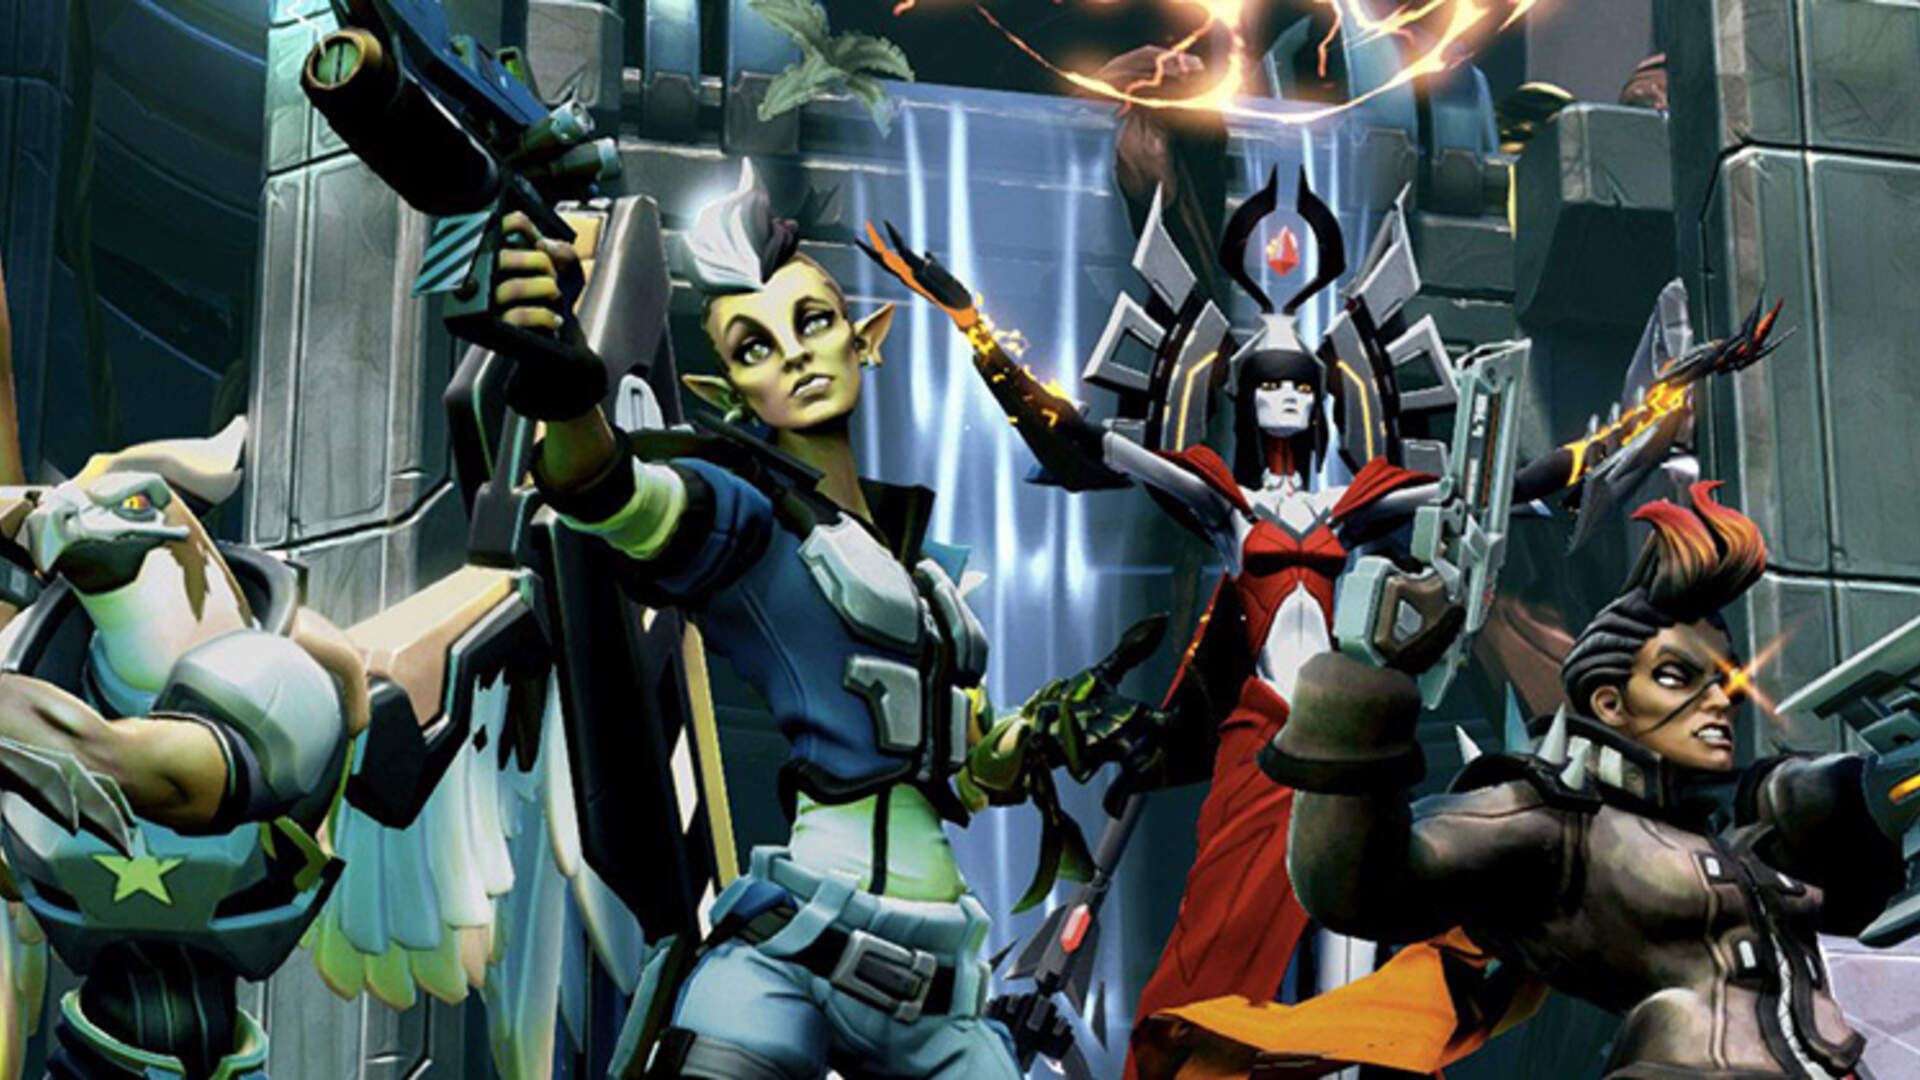 Battleborn is Free-to-Play, but Don't Call it That